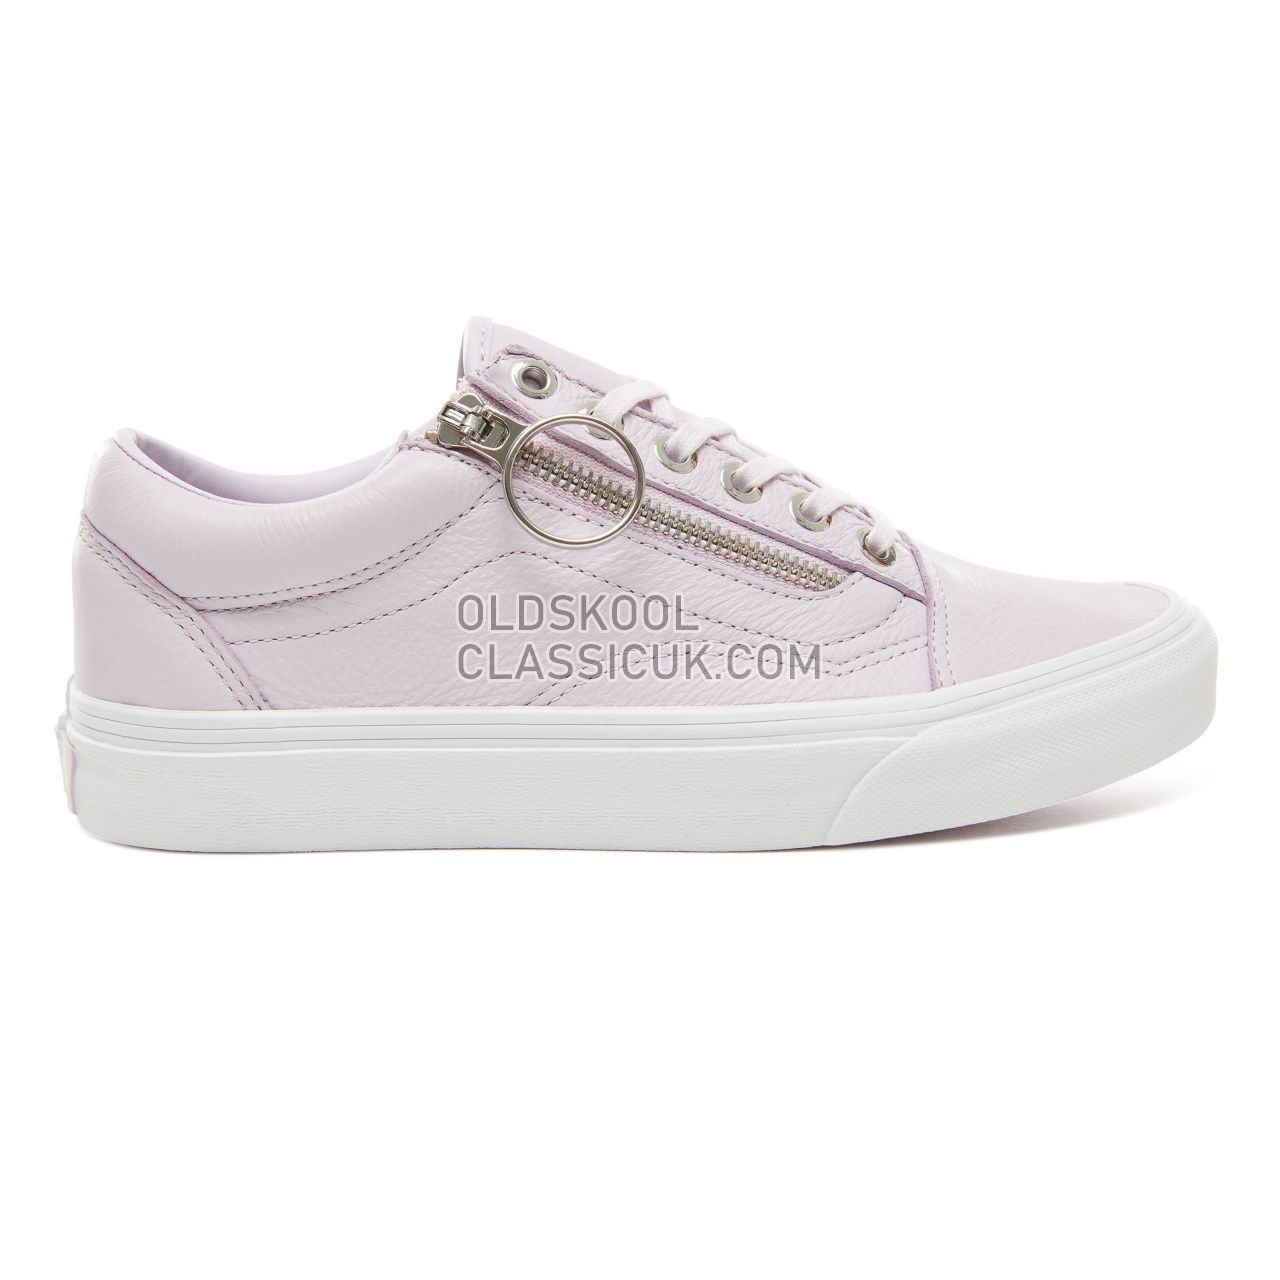 0ff1415b6f Vans Metal Hardware Old Skool Zip Sneakers Womens (Metal Hardware) Lavender  Fog True ...